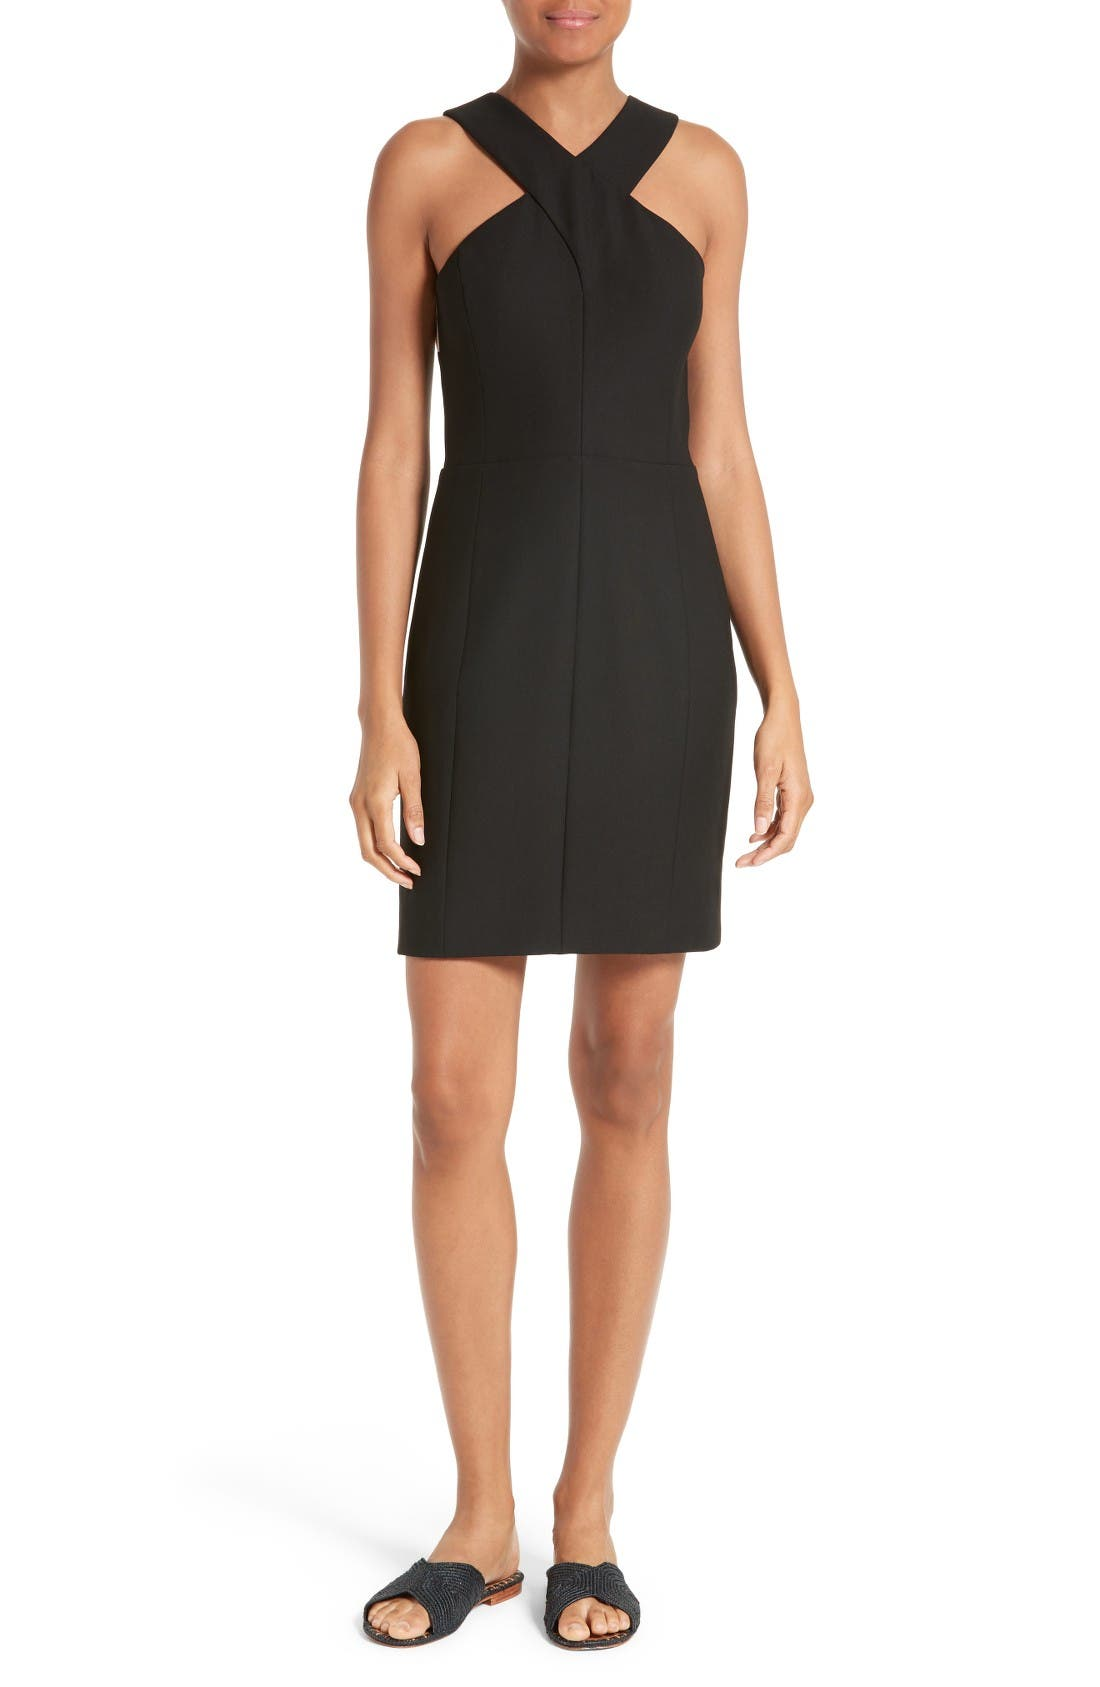 Elizabeth and James Elliot Cross Front Strap Dress